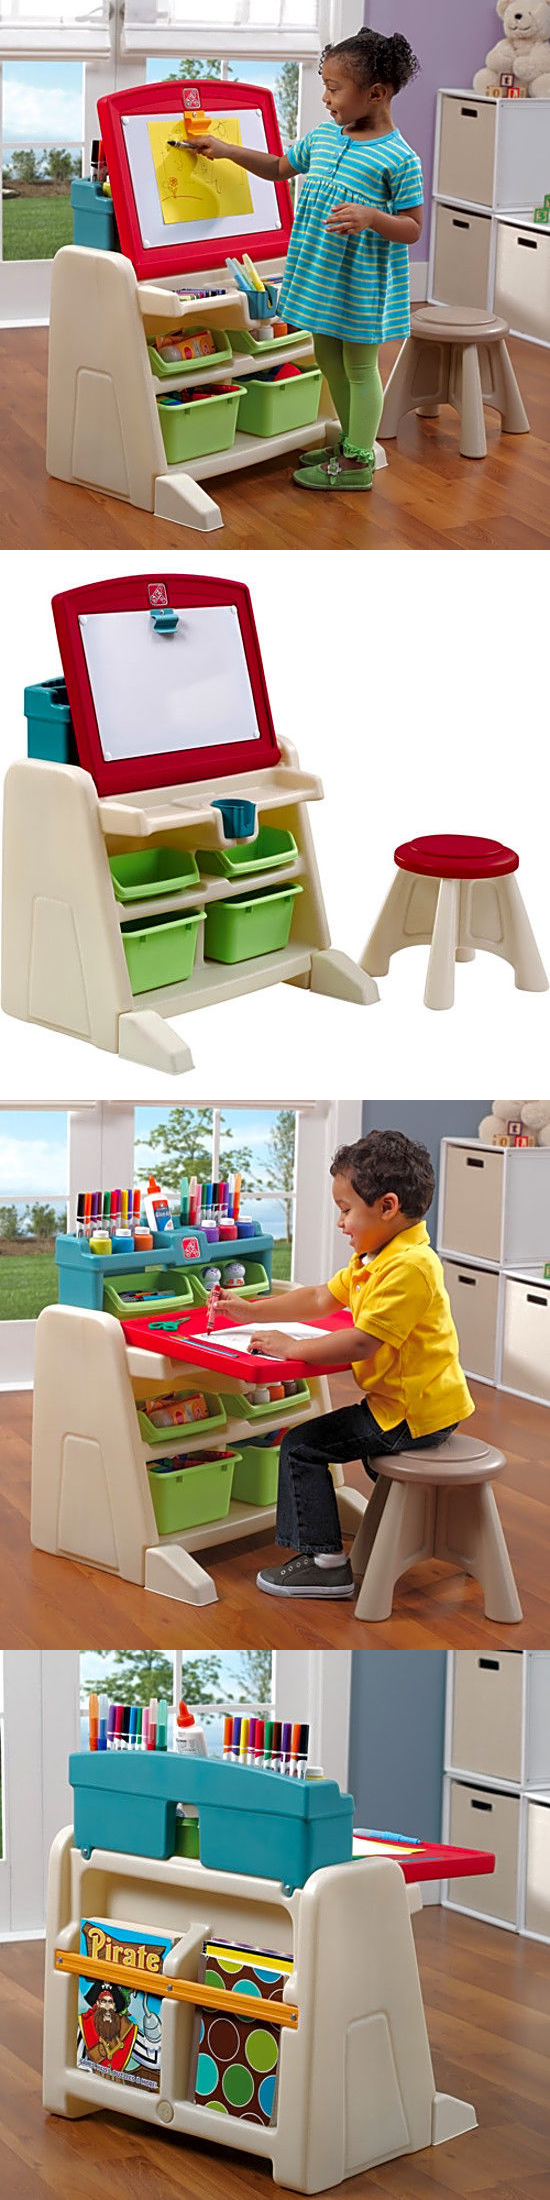 Amazing Other Kids Drawing And Painting 160718: New Step2 Flip Doodle Easel Desk  With Stool Magnetic Nice Design